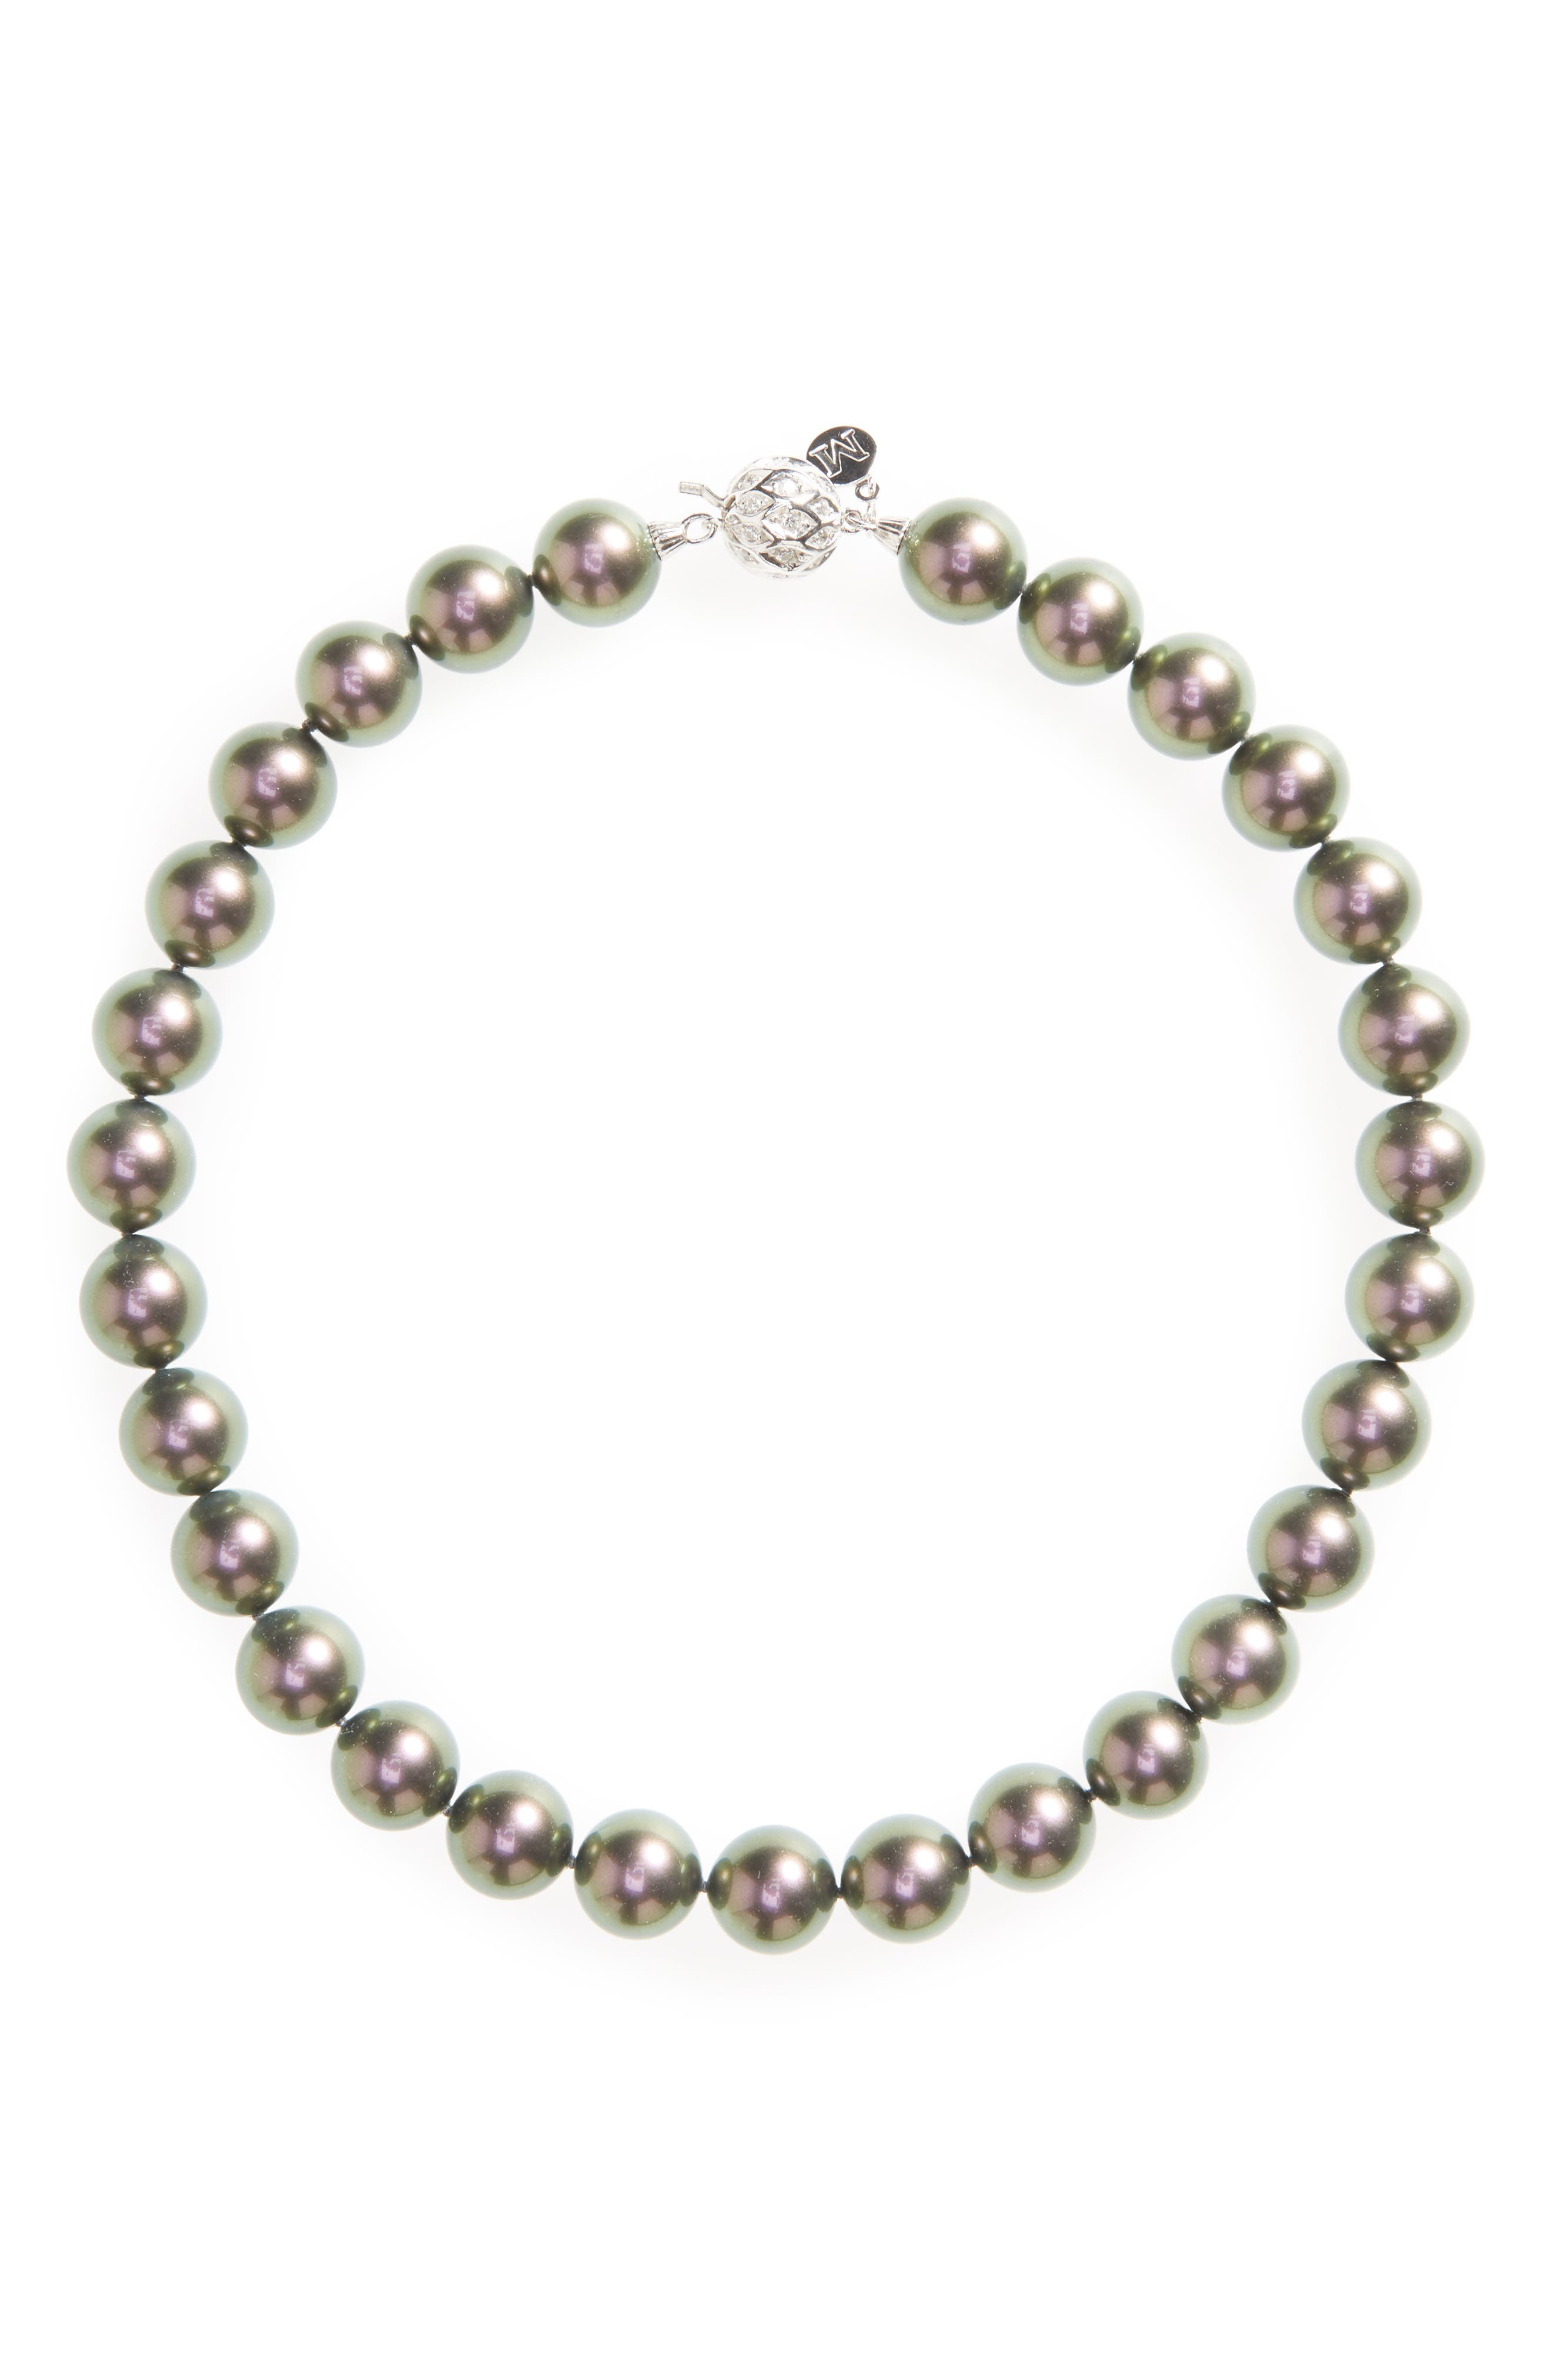 Majorica 14mm Simulated Pearl Strand Necklace